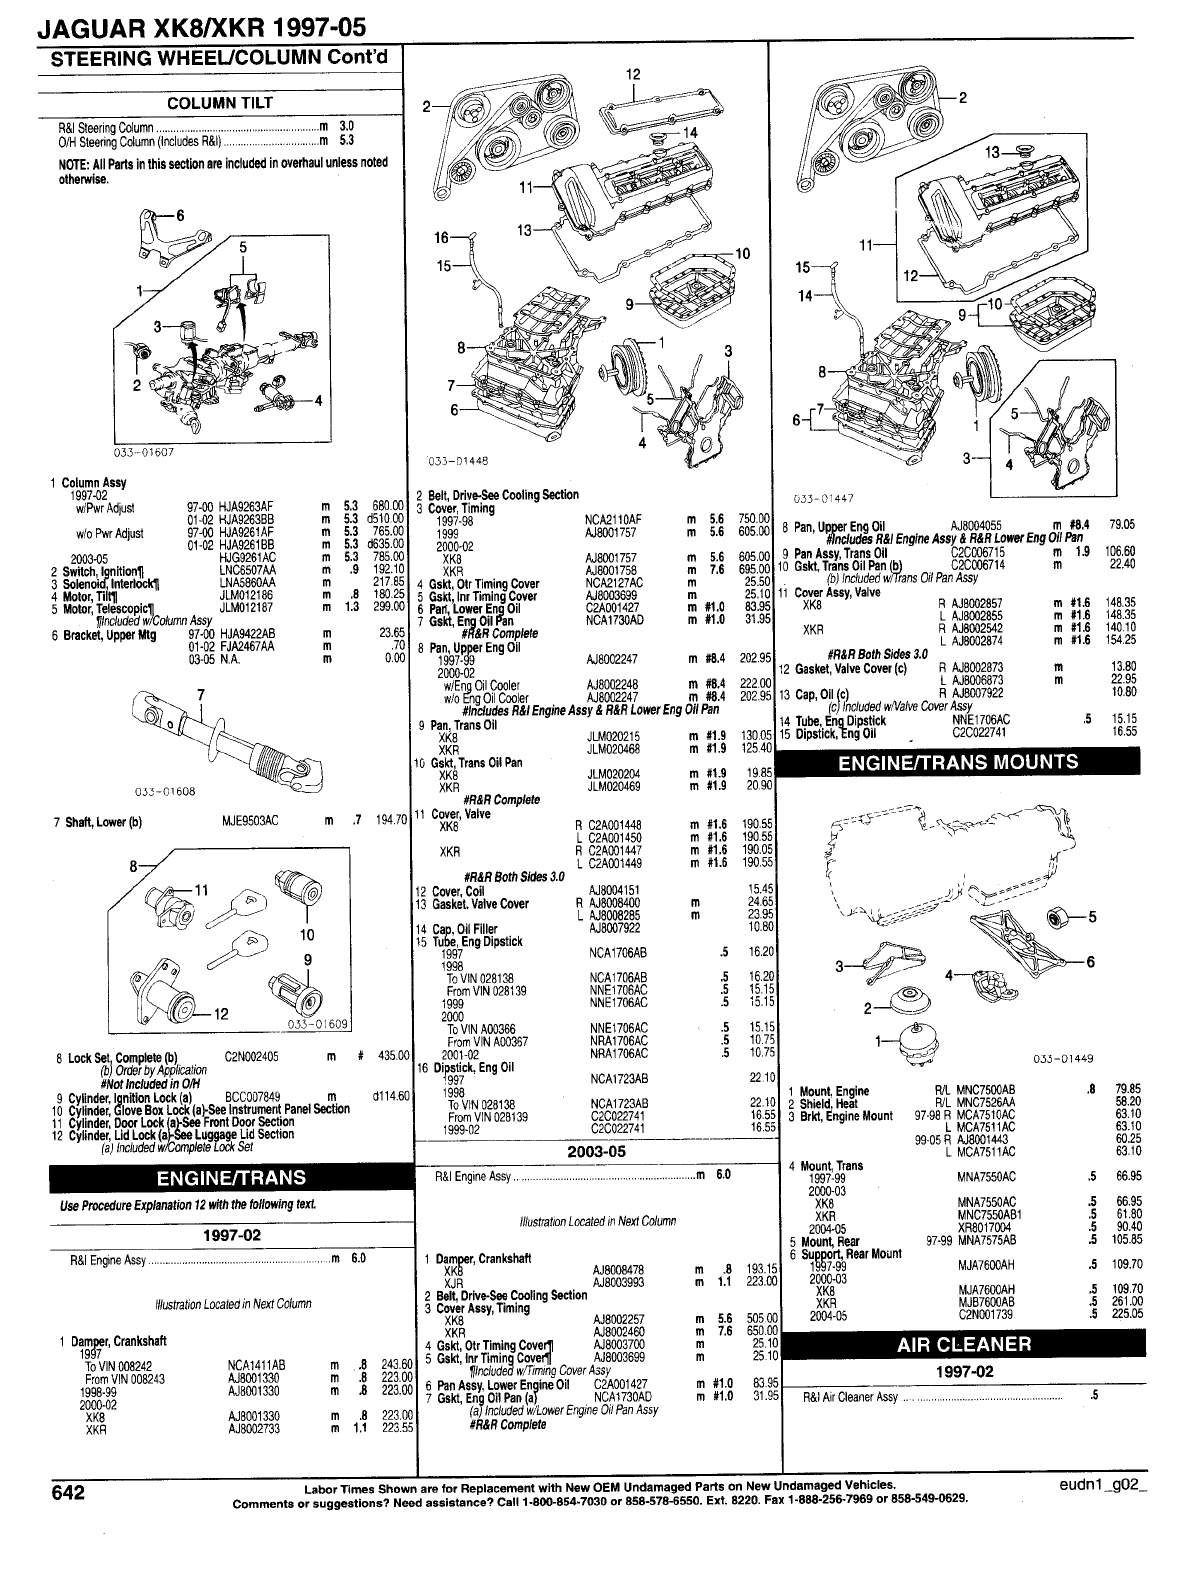 Jaguar Xkr Misc Document Jaguar Parts List